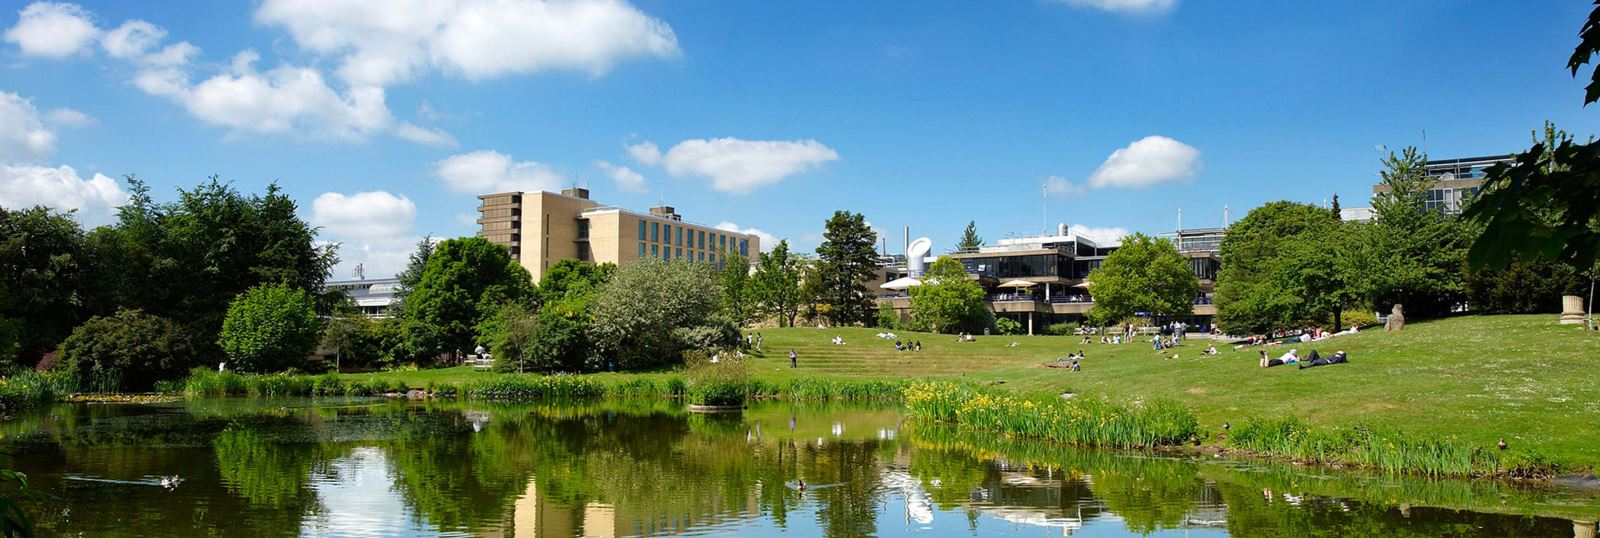 University of Bath - Enica have recommissioned hundreds of energy and water meters of various types and make across the campus. The system is now recording data accurately and the university has a database of meter details.